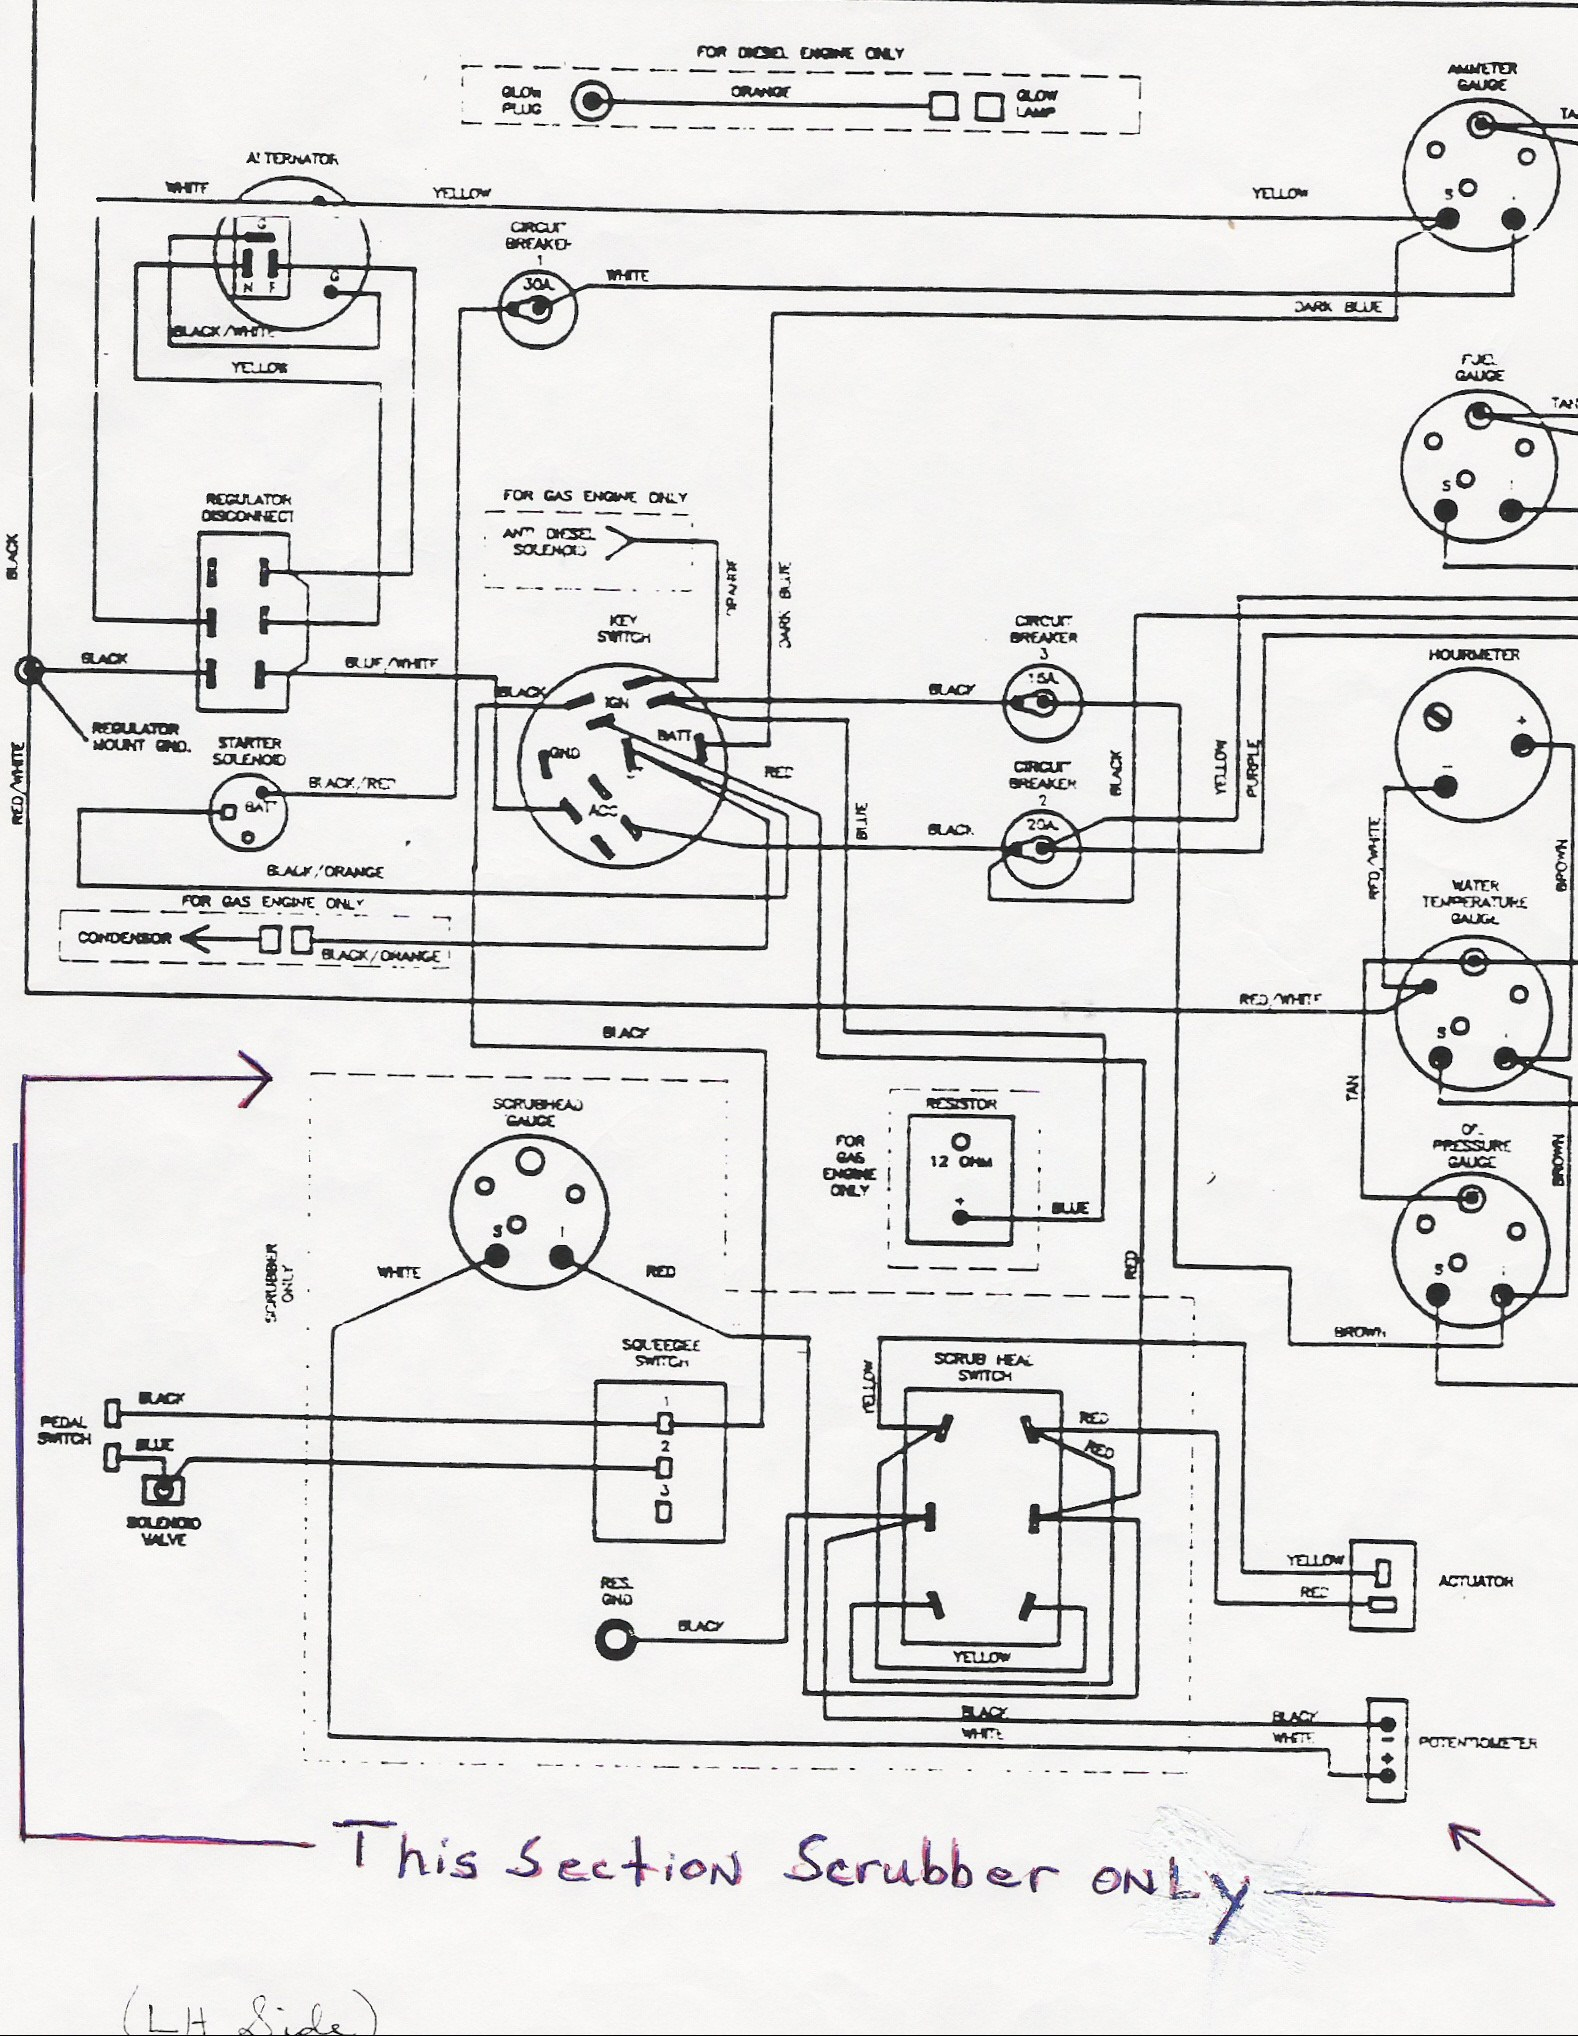 Onan Generator Wiring Diagram 611 1267 - Wiring Diagram Description - Generator Wiring Diagram